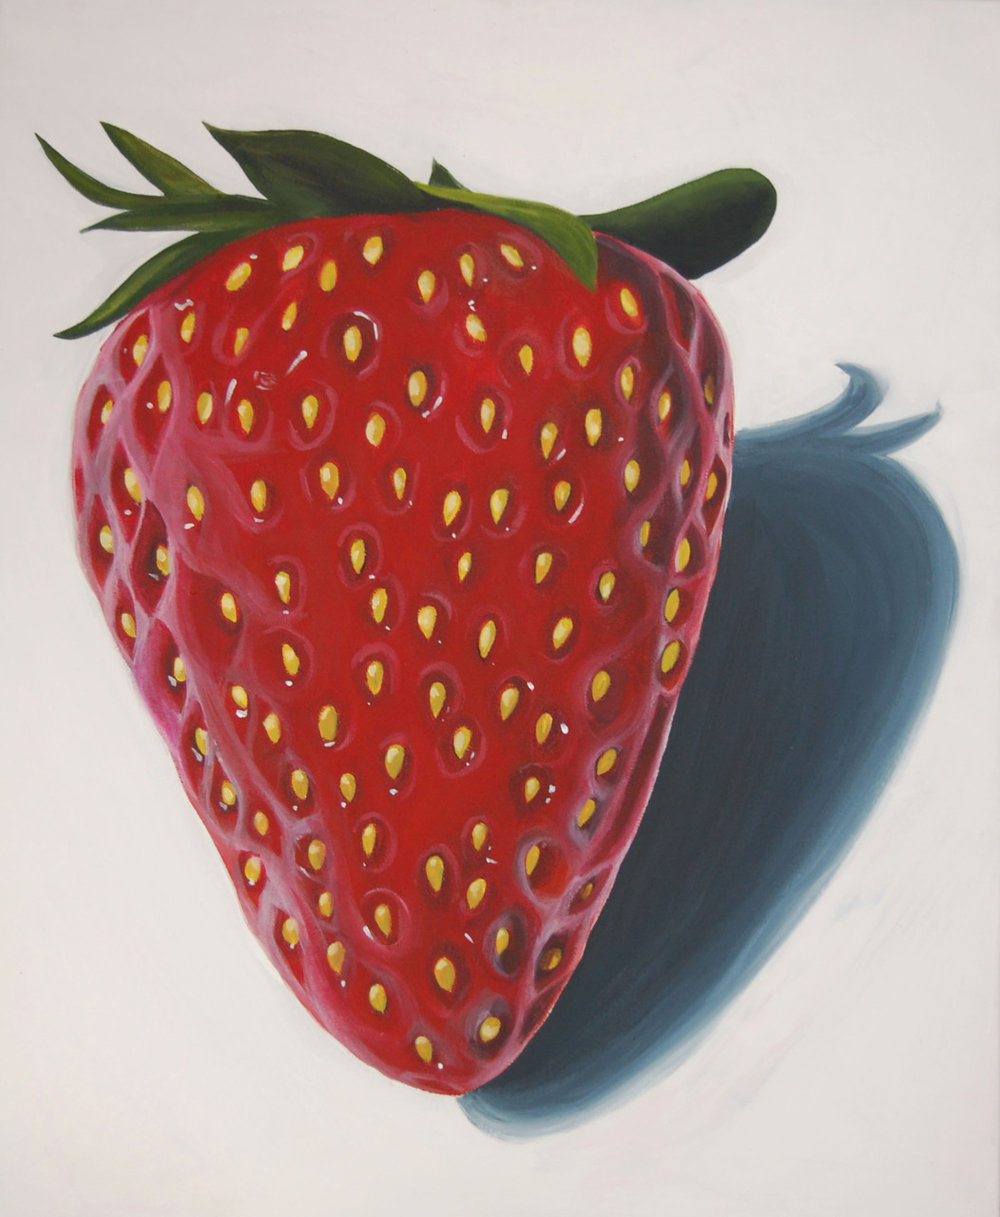 Strawberry   2011. Acrylic on canvas. 24 x 30.